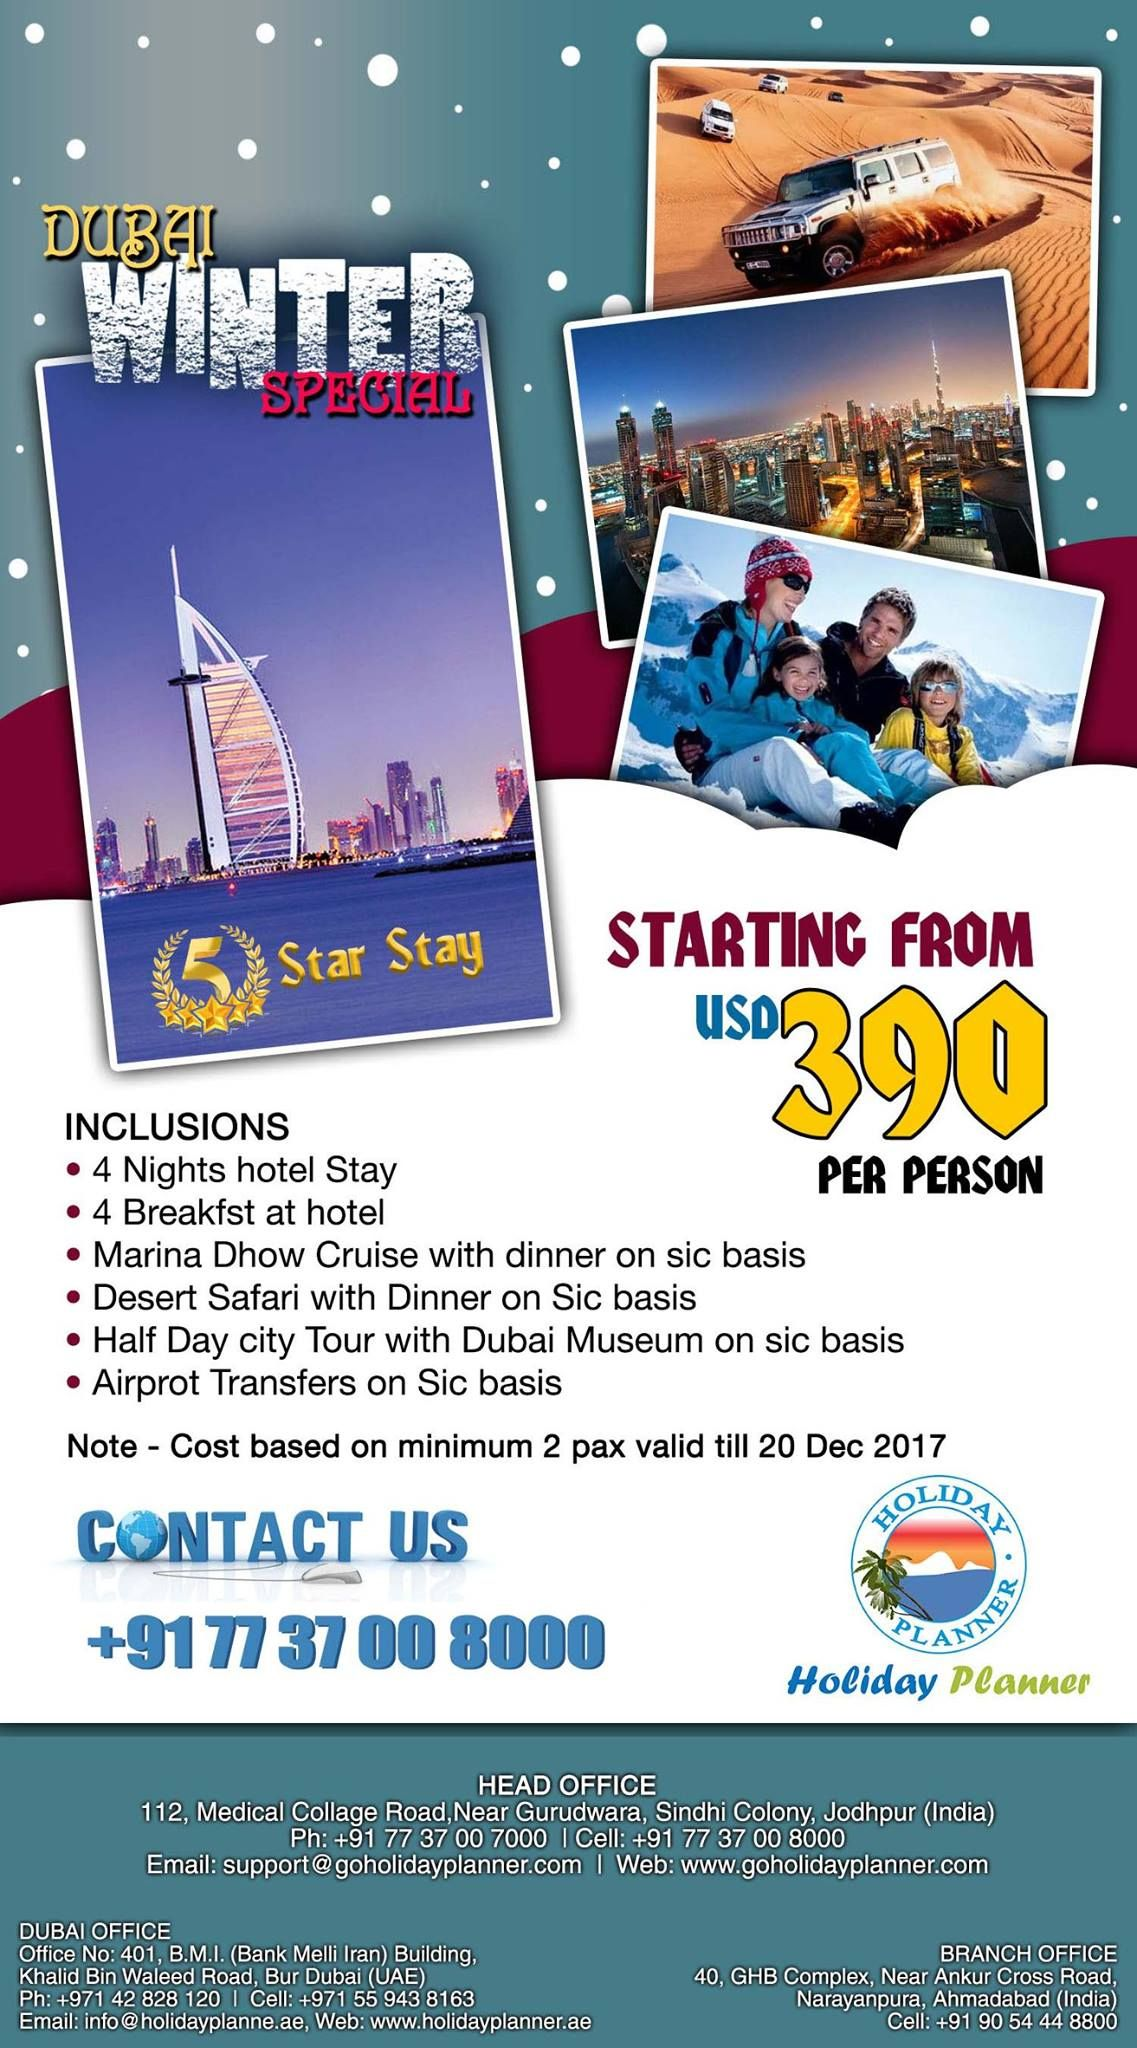 37 Tour Dubai Winter Special 5 Star Stay Holidayplanner India